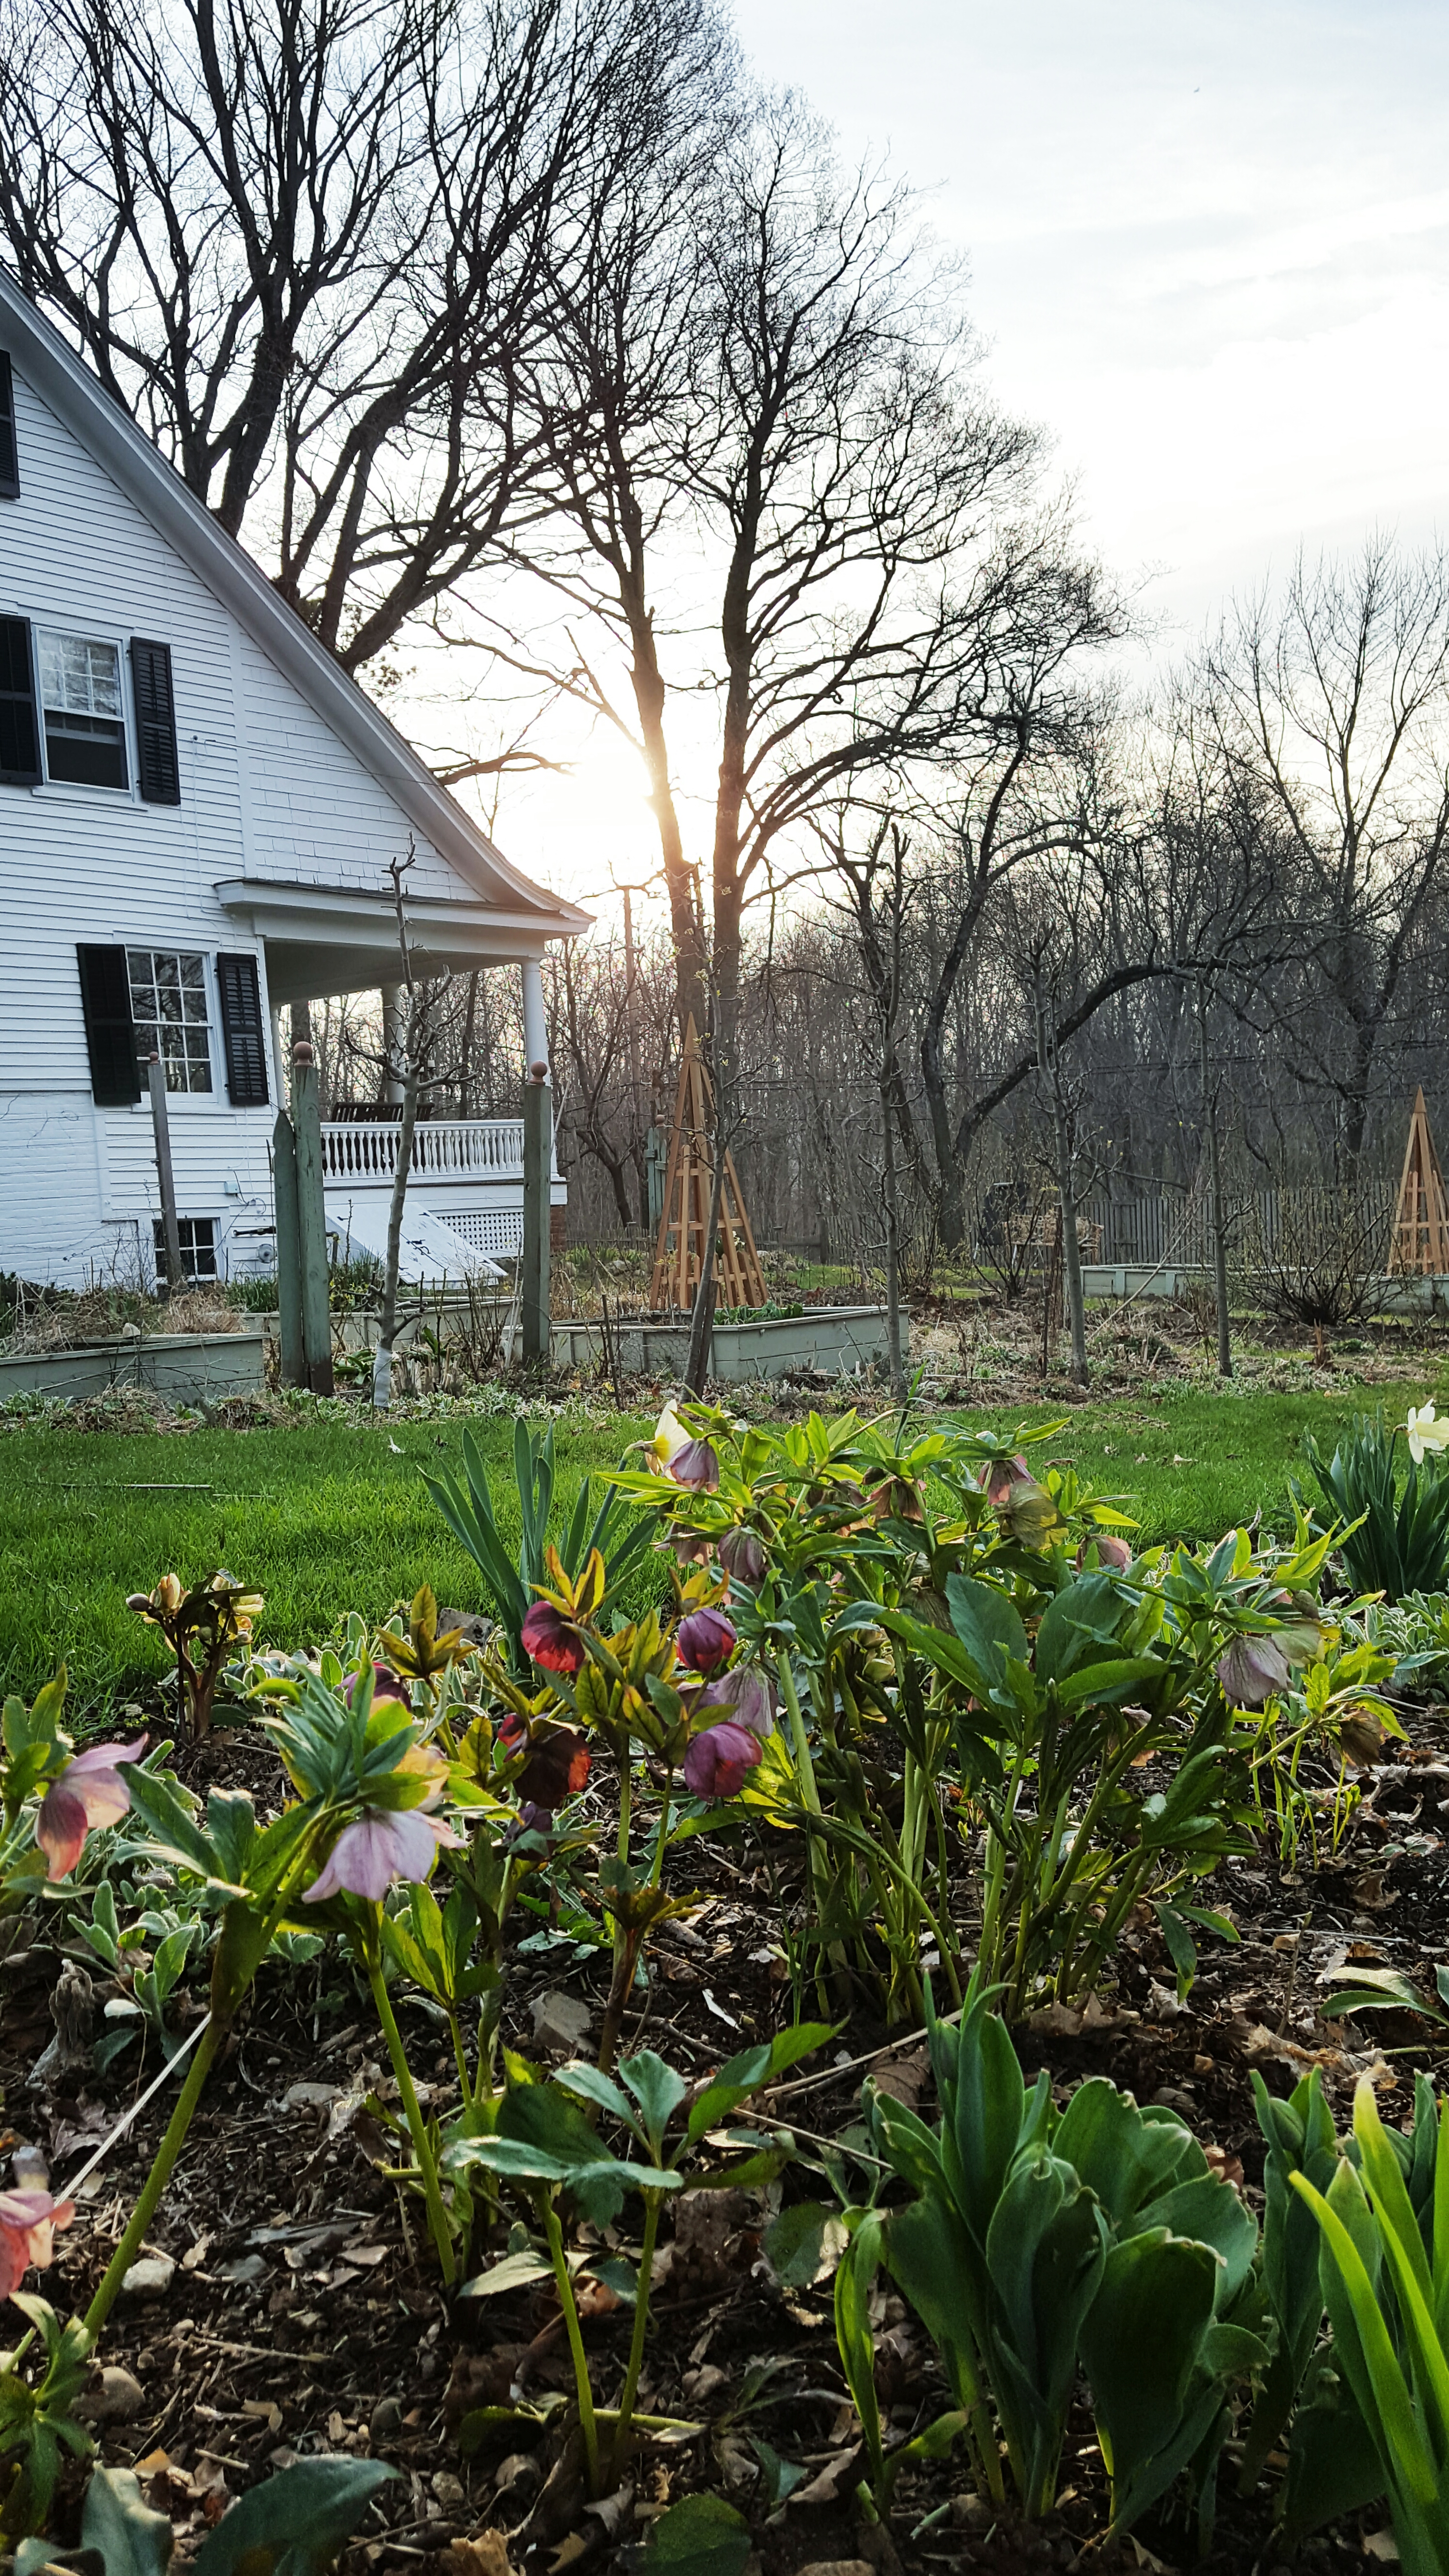 It's spring gardening season and my farmhouse garden in the Hudson Valley is just starting to bloom. For more images, I invite you to visit www.instagram.com/gloriabcollins.